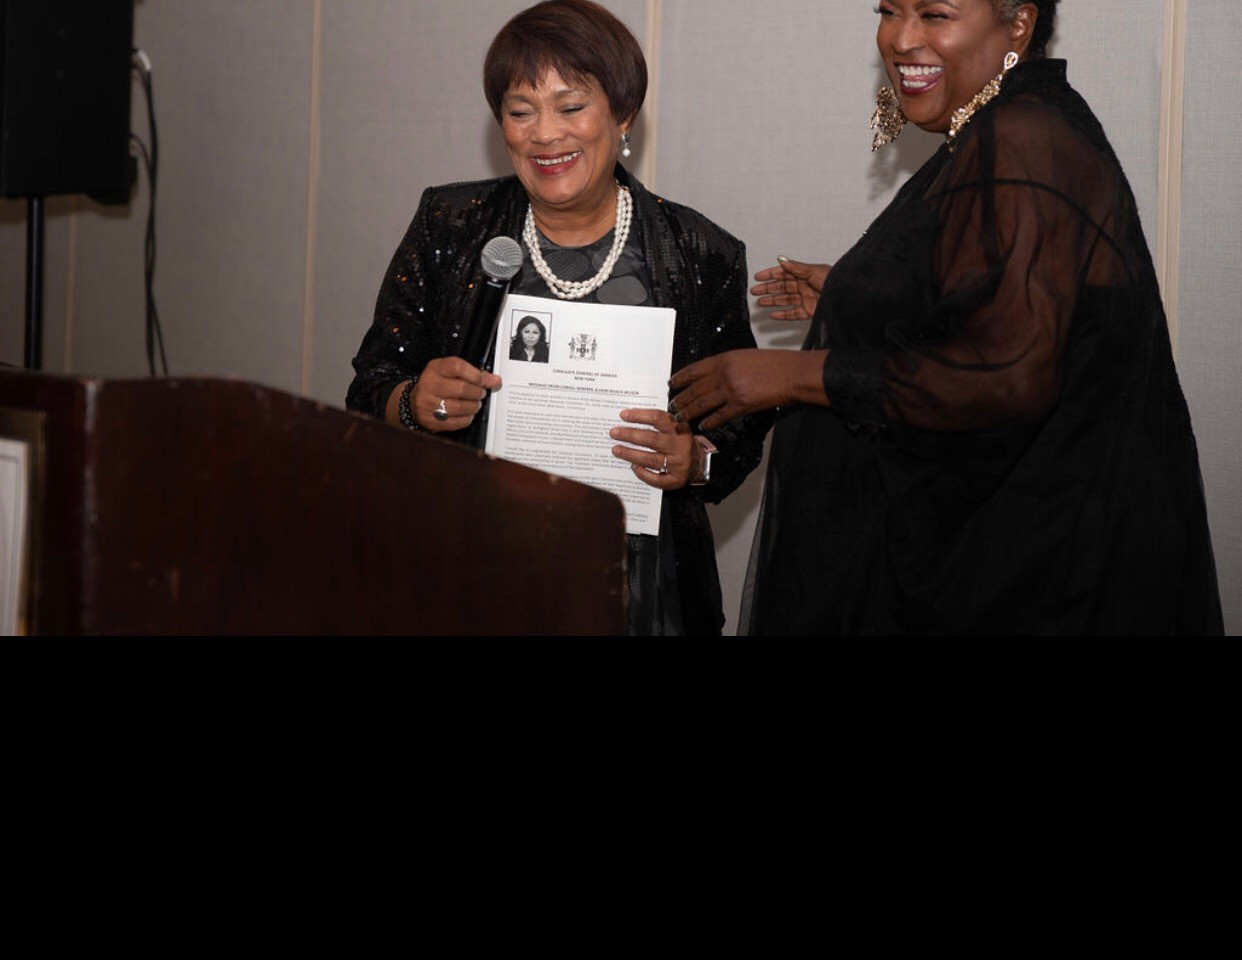 Mayor Harp and Babz Rawls-Ivy our Mistre